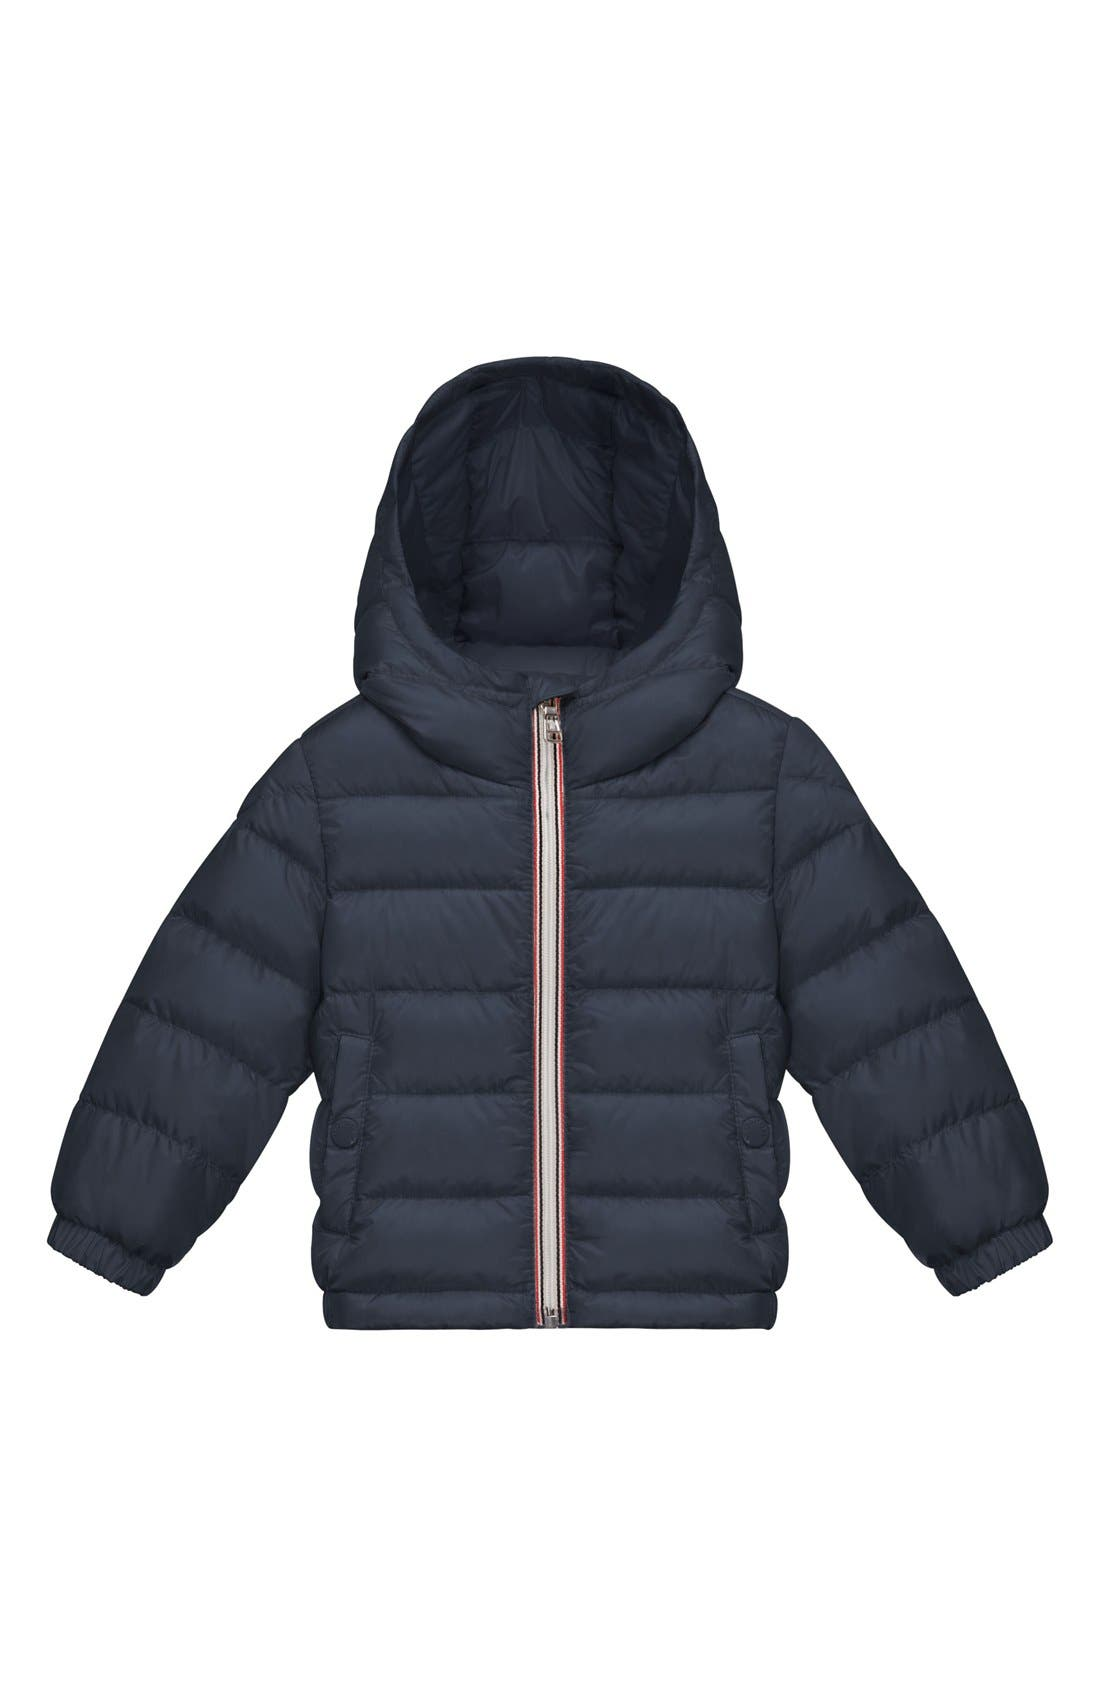 'Dominic' Water Resistant Down Puffer Jacket,                             Main thumbnail 1, color,                             419